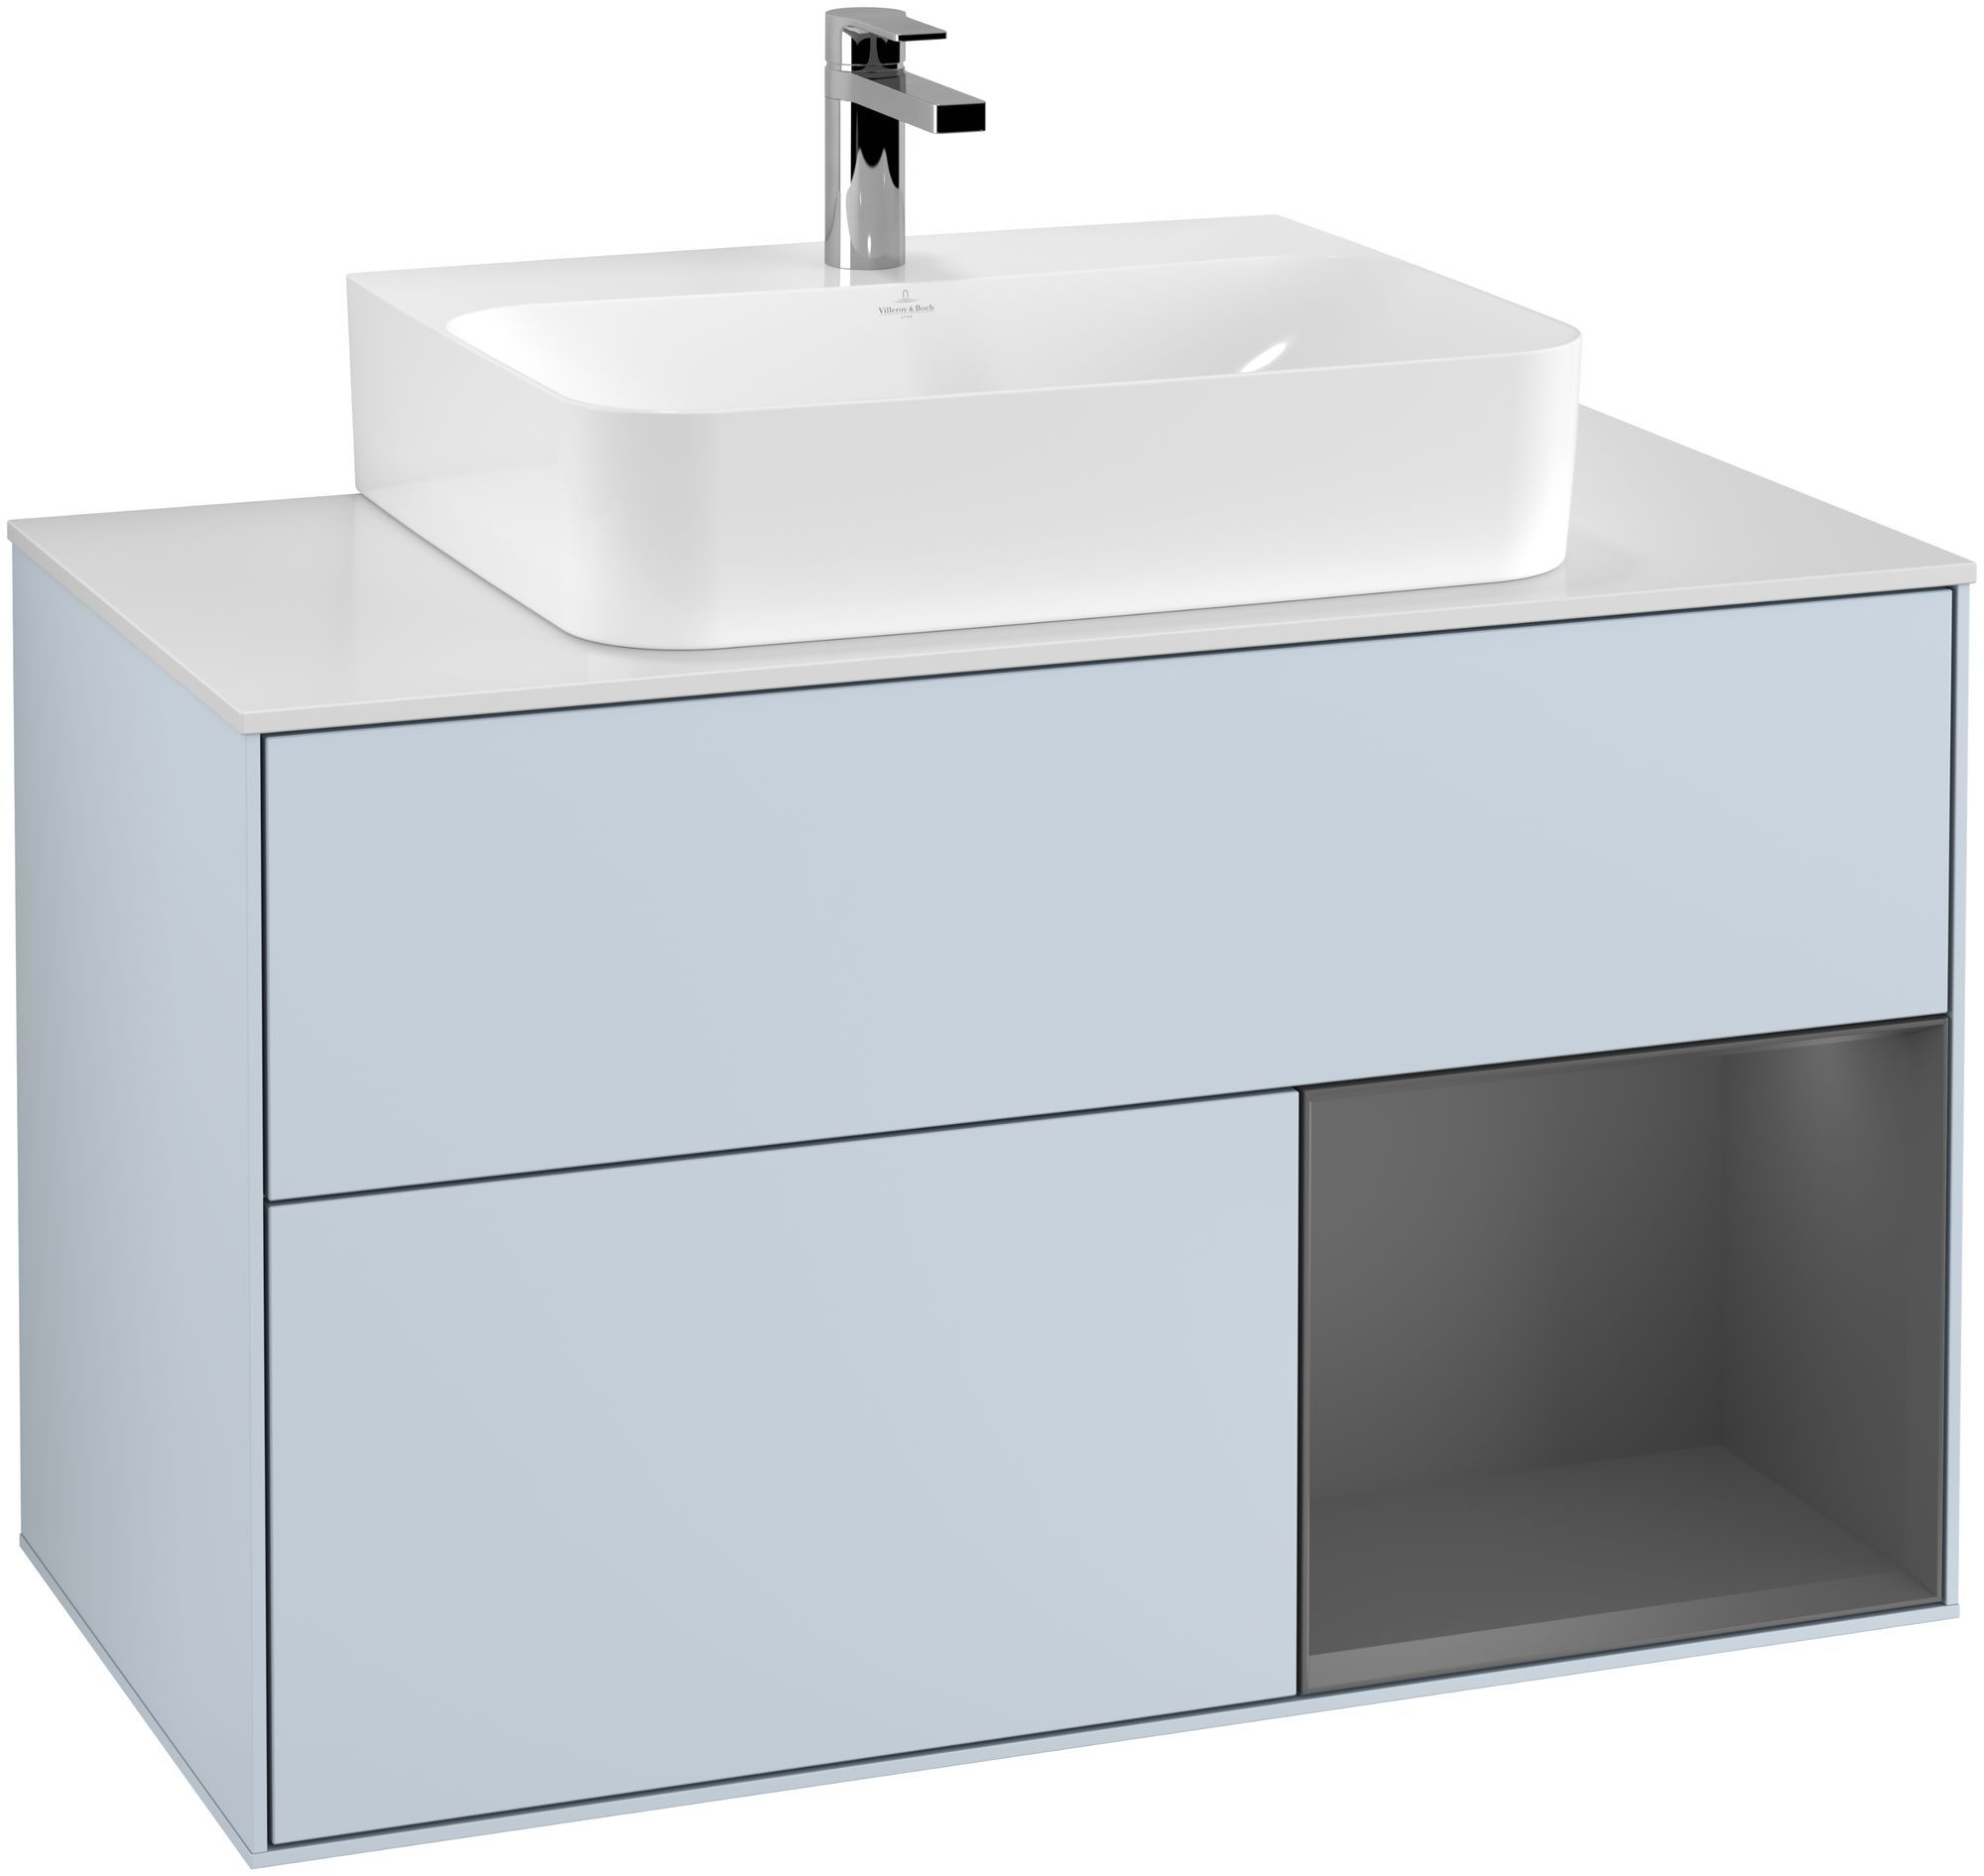 Villeroy & Boch Finion F12 Waschtischunterschrank mit Regalelement 2 Auszüge für WT mittig LED-Beleuchtung B:100xH:60,3xT:50,1cm Front, Korpus: Cloud, Regal: Anthracite Matt, Glasplatte: White Matt F121GKHA